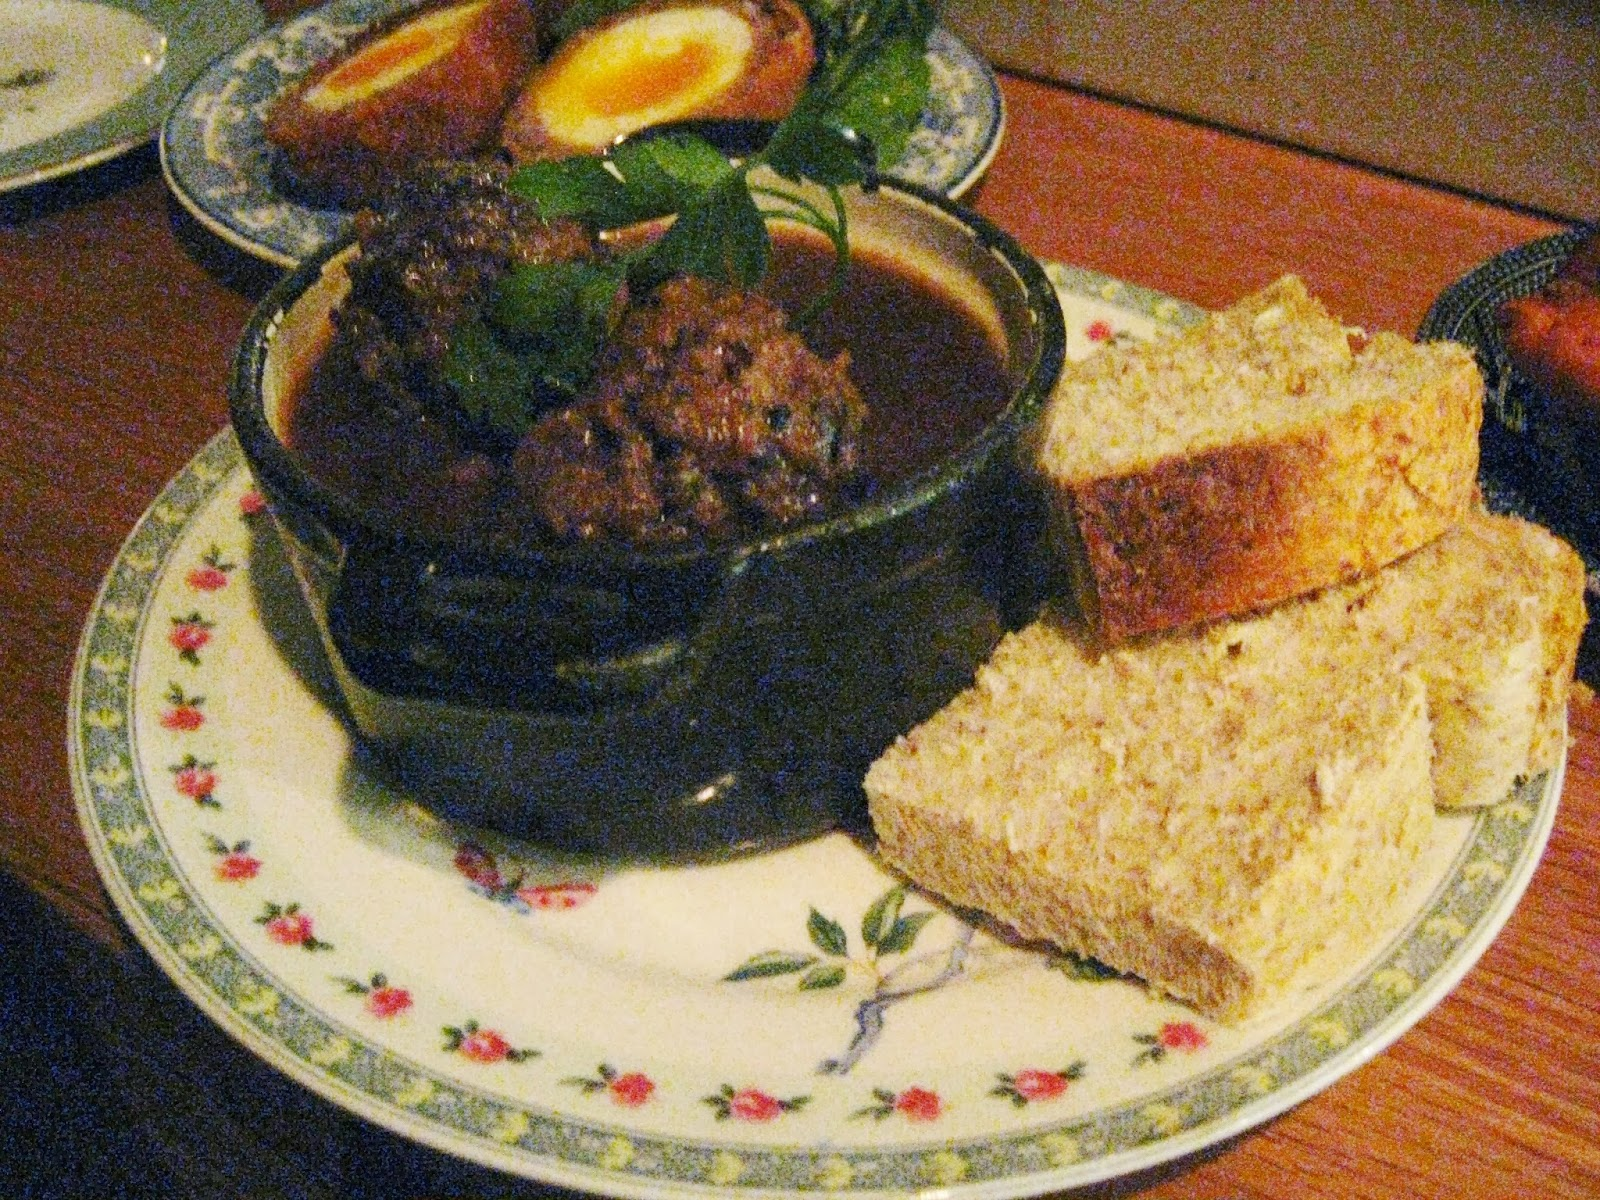 Lamb meatballs with gravy and crusty bread